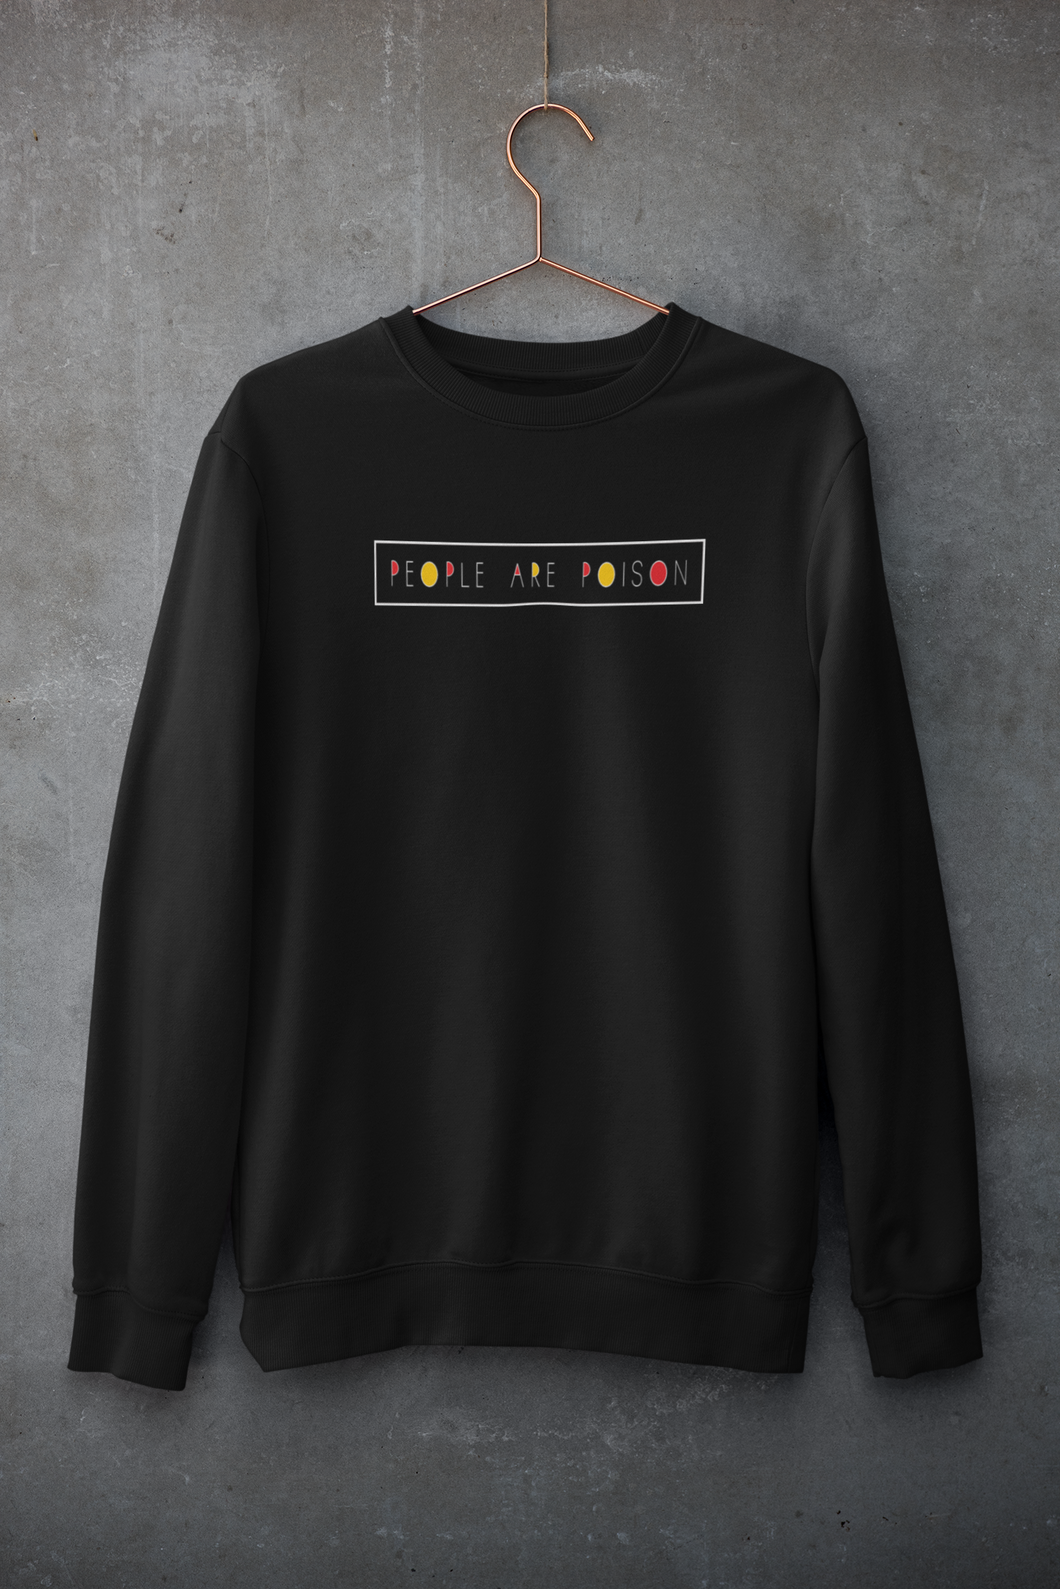 People Are Poison : MINIMAL - Winter Sweatshirts